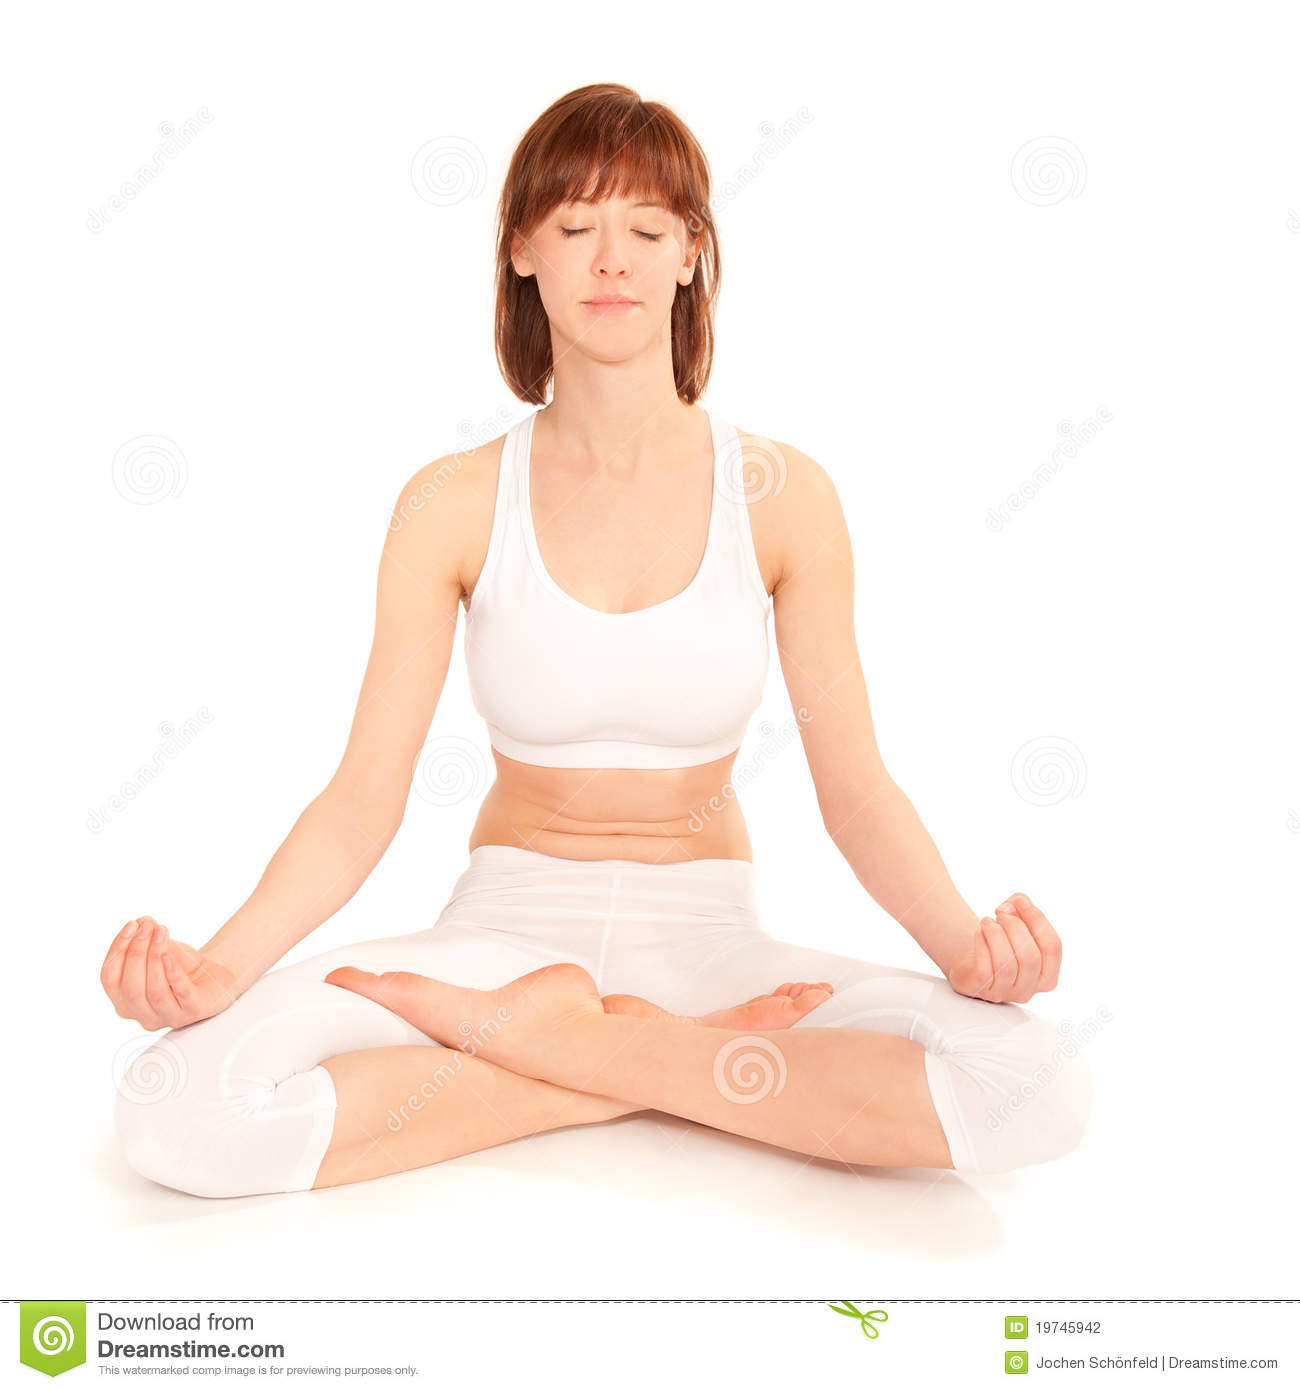 yoga de pratique de jeune femme en position de lotus photo stock image du soutien pattes. Black Bedroom Furniture Sets. Home Design Ideas